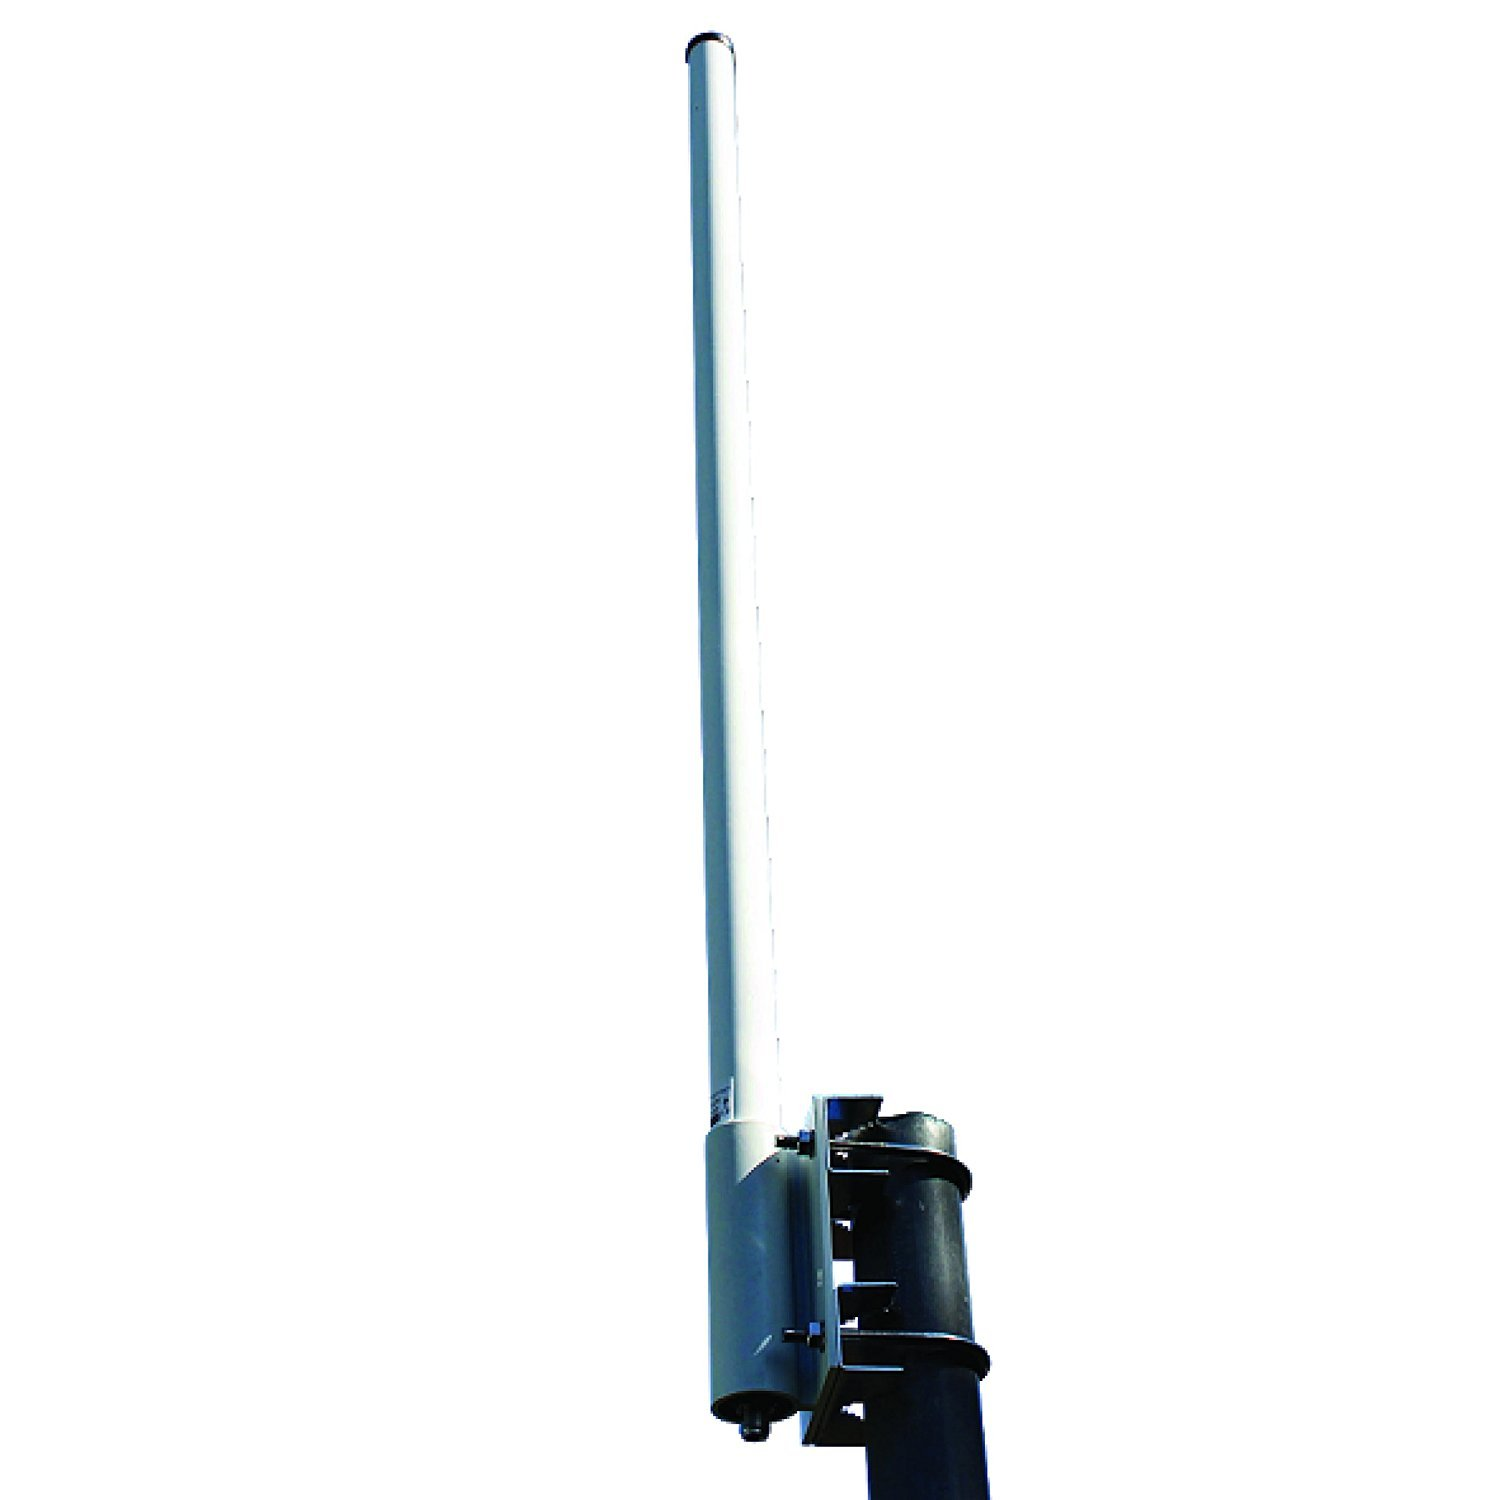 Antenna World OM2415HD 15 dBi Omni-Directional Wi-Fi Antenna Professional Grade by Antenna World